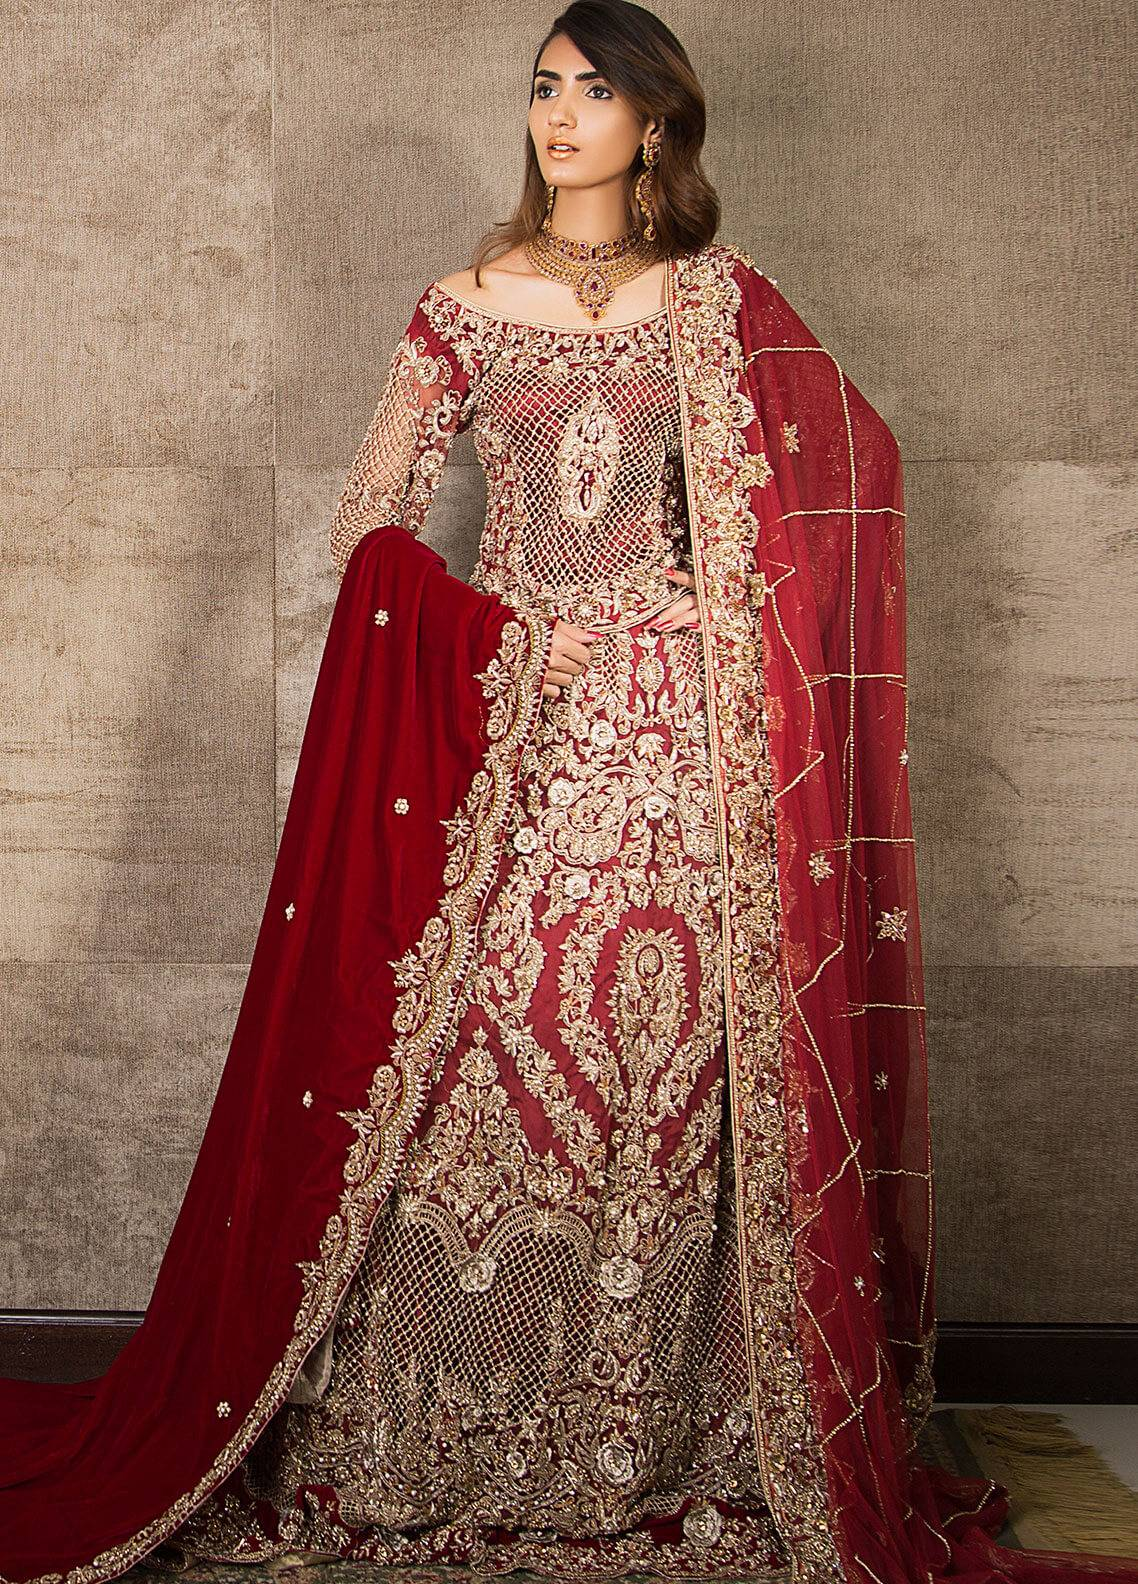 7aaac5b7f4 Momal Khan Embroidered Stitched Bridal Suit MK-09B Classic Red. Online only